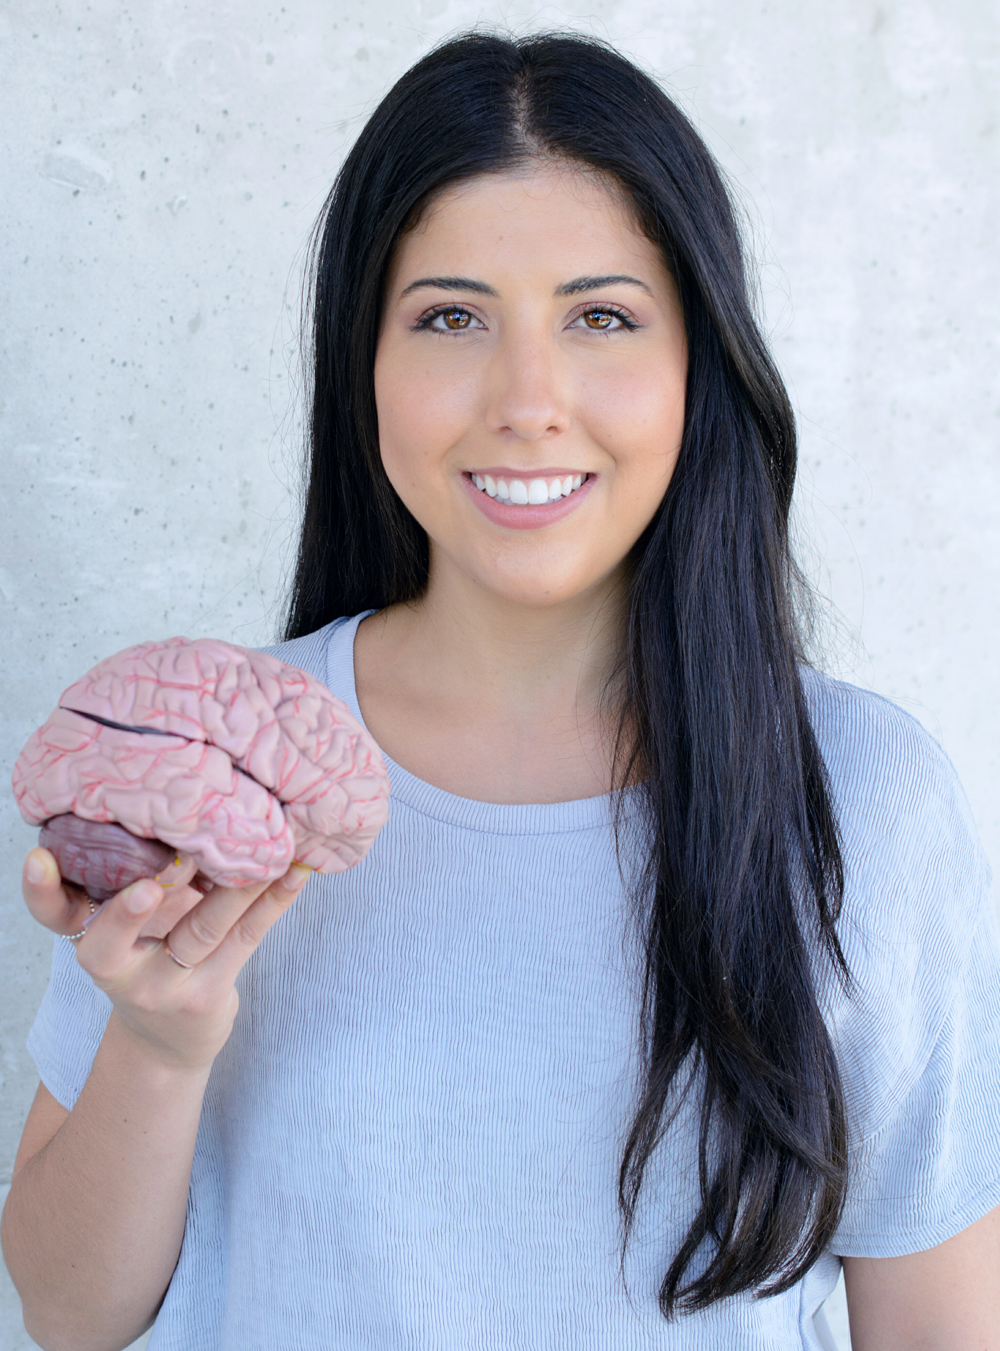 Samantha Yammine, Neurobiologist - Samantha Yammine is a popular science communicator on Instagram that focuses on neurobiology and sharing her research with the world. Like Danni, she utilizes the digital video platform and believes in harnessing the power of social media to exchange ideas. You can follow her on Instagram at @science.sam.